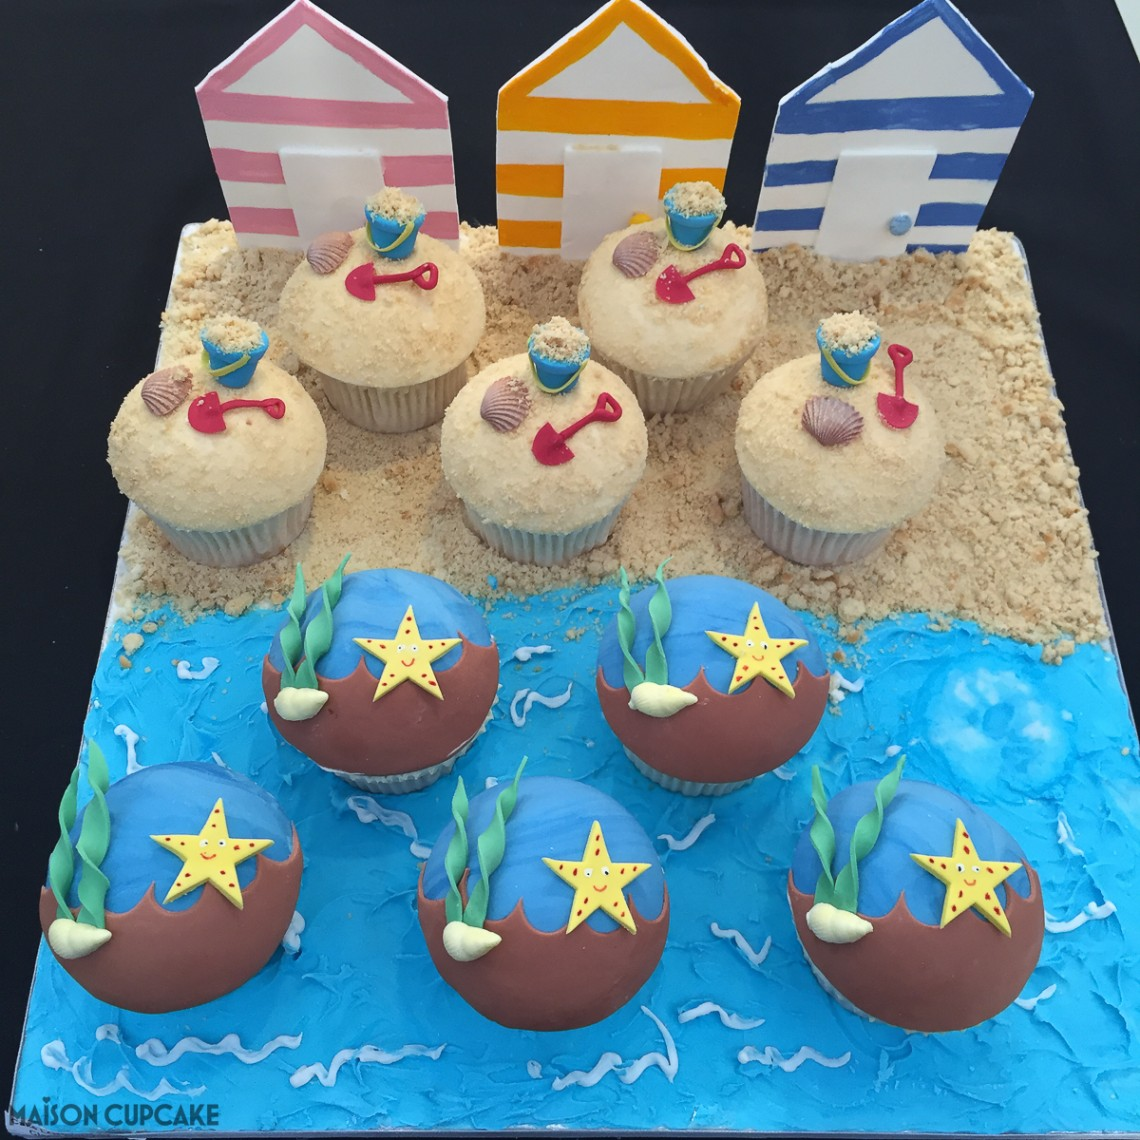 Seaside cupcakes by Stephanie Barnes